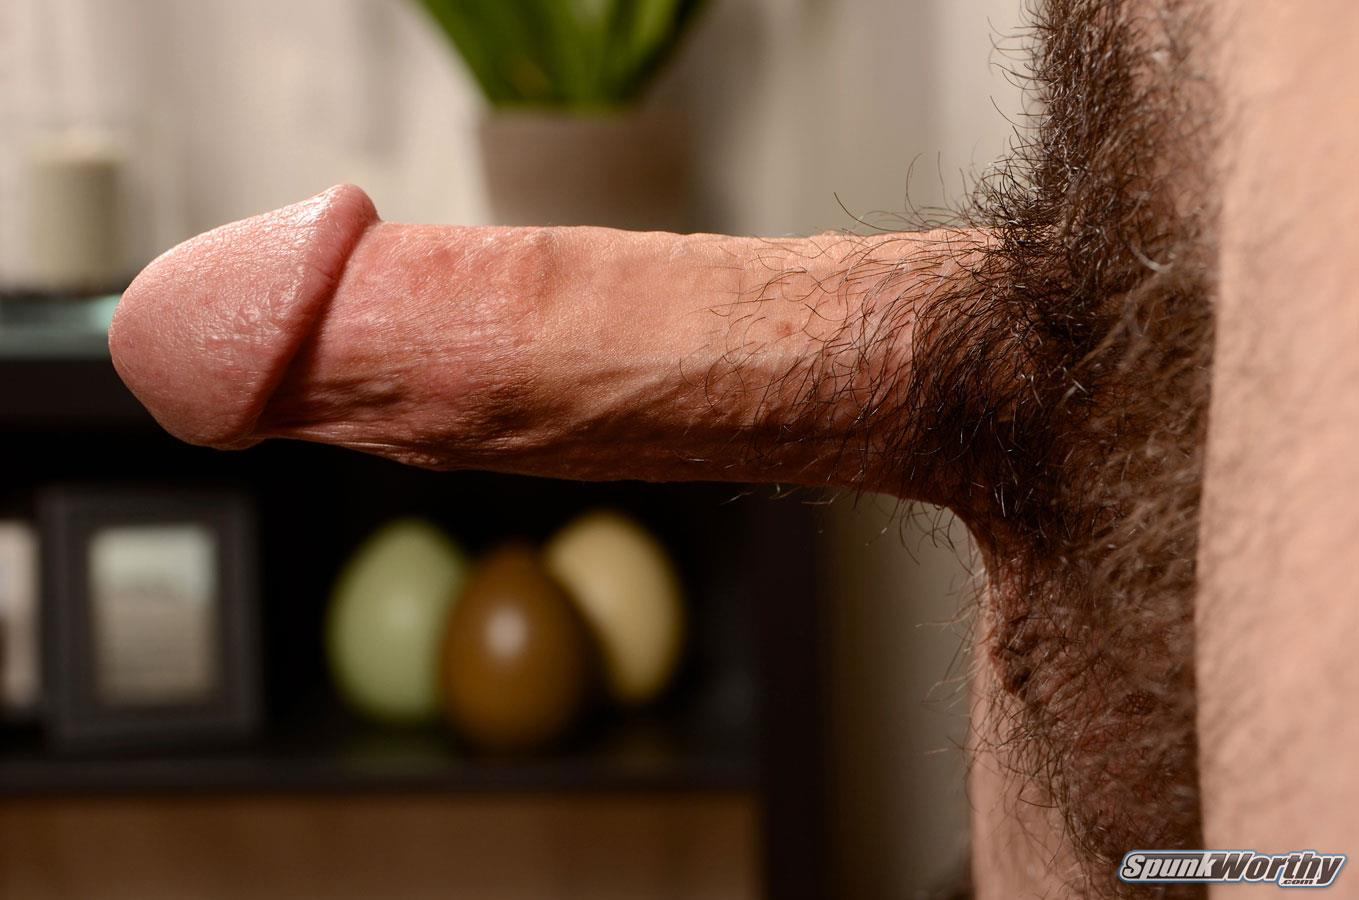 SpunkWorthy-Nevin-Hairy-Young-Marine-Jerking-His-Cock-Amateur-Gay-Porn-10 Straight Young Marine From Texas Jerking His Hairy Cock